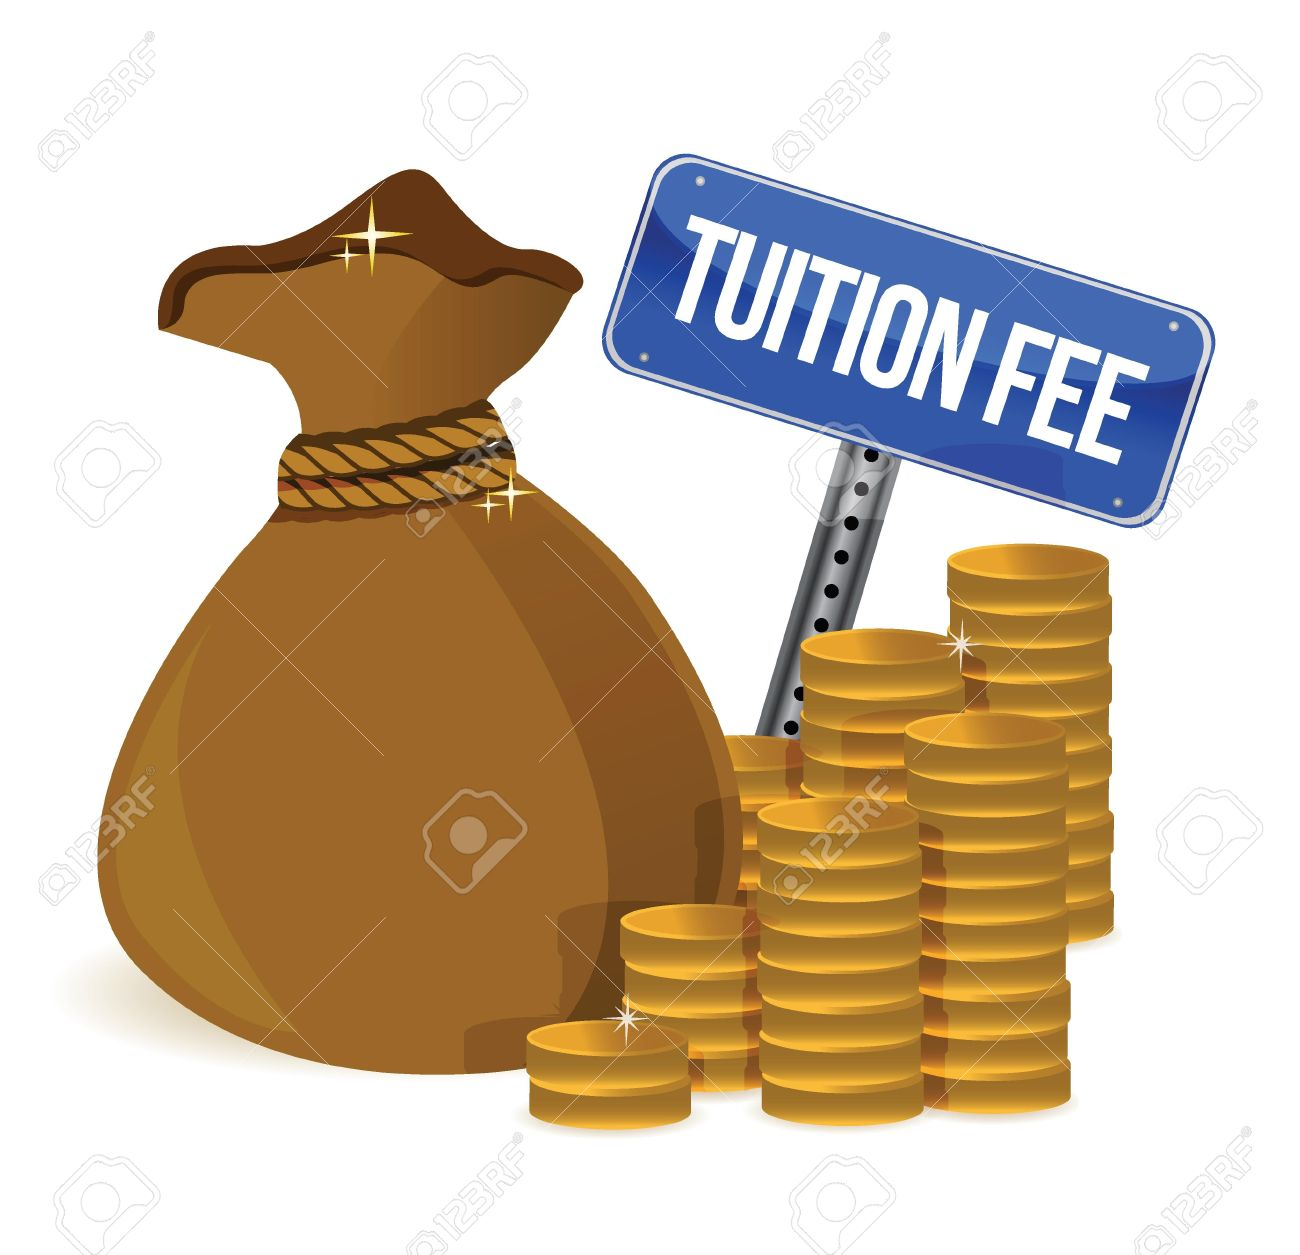 17823496-bag-with-tuition-fee-illustration-design-over-a-white-background-stock-vector